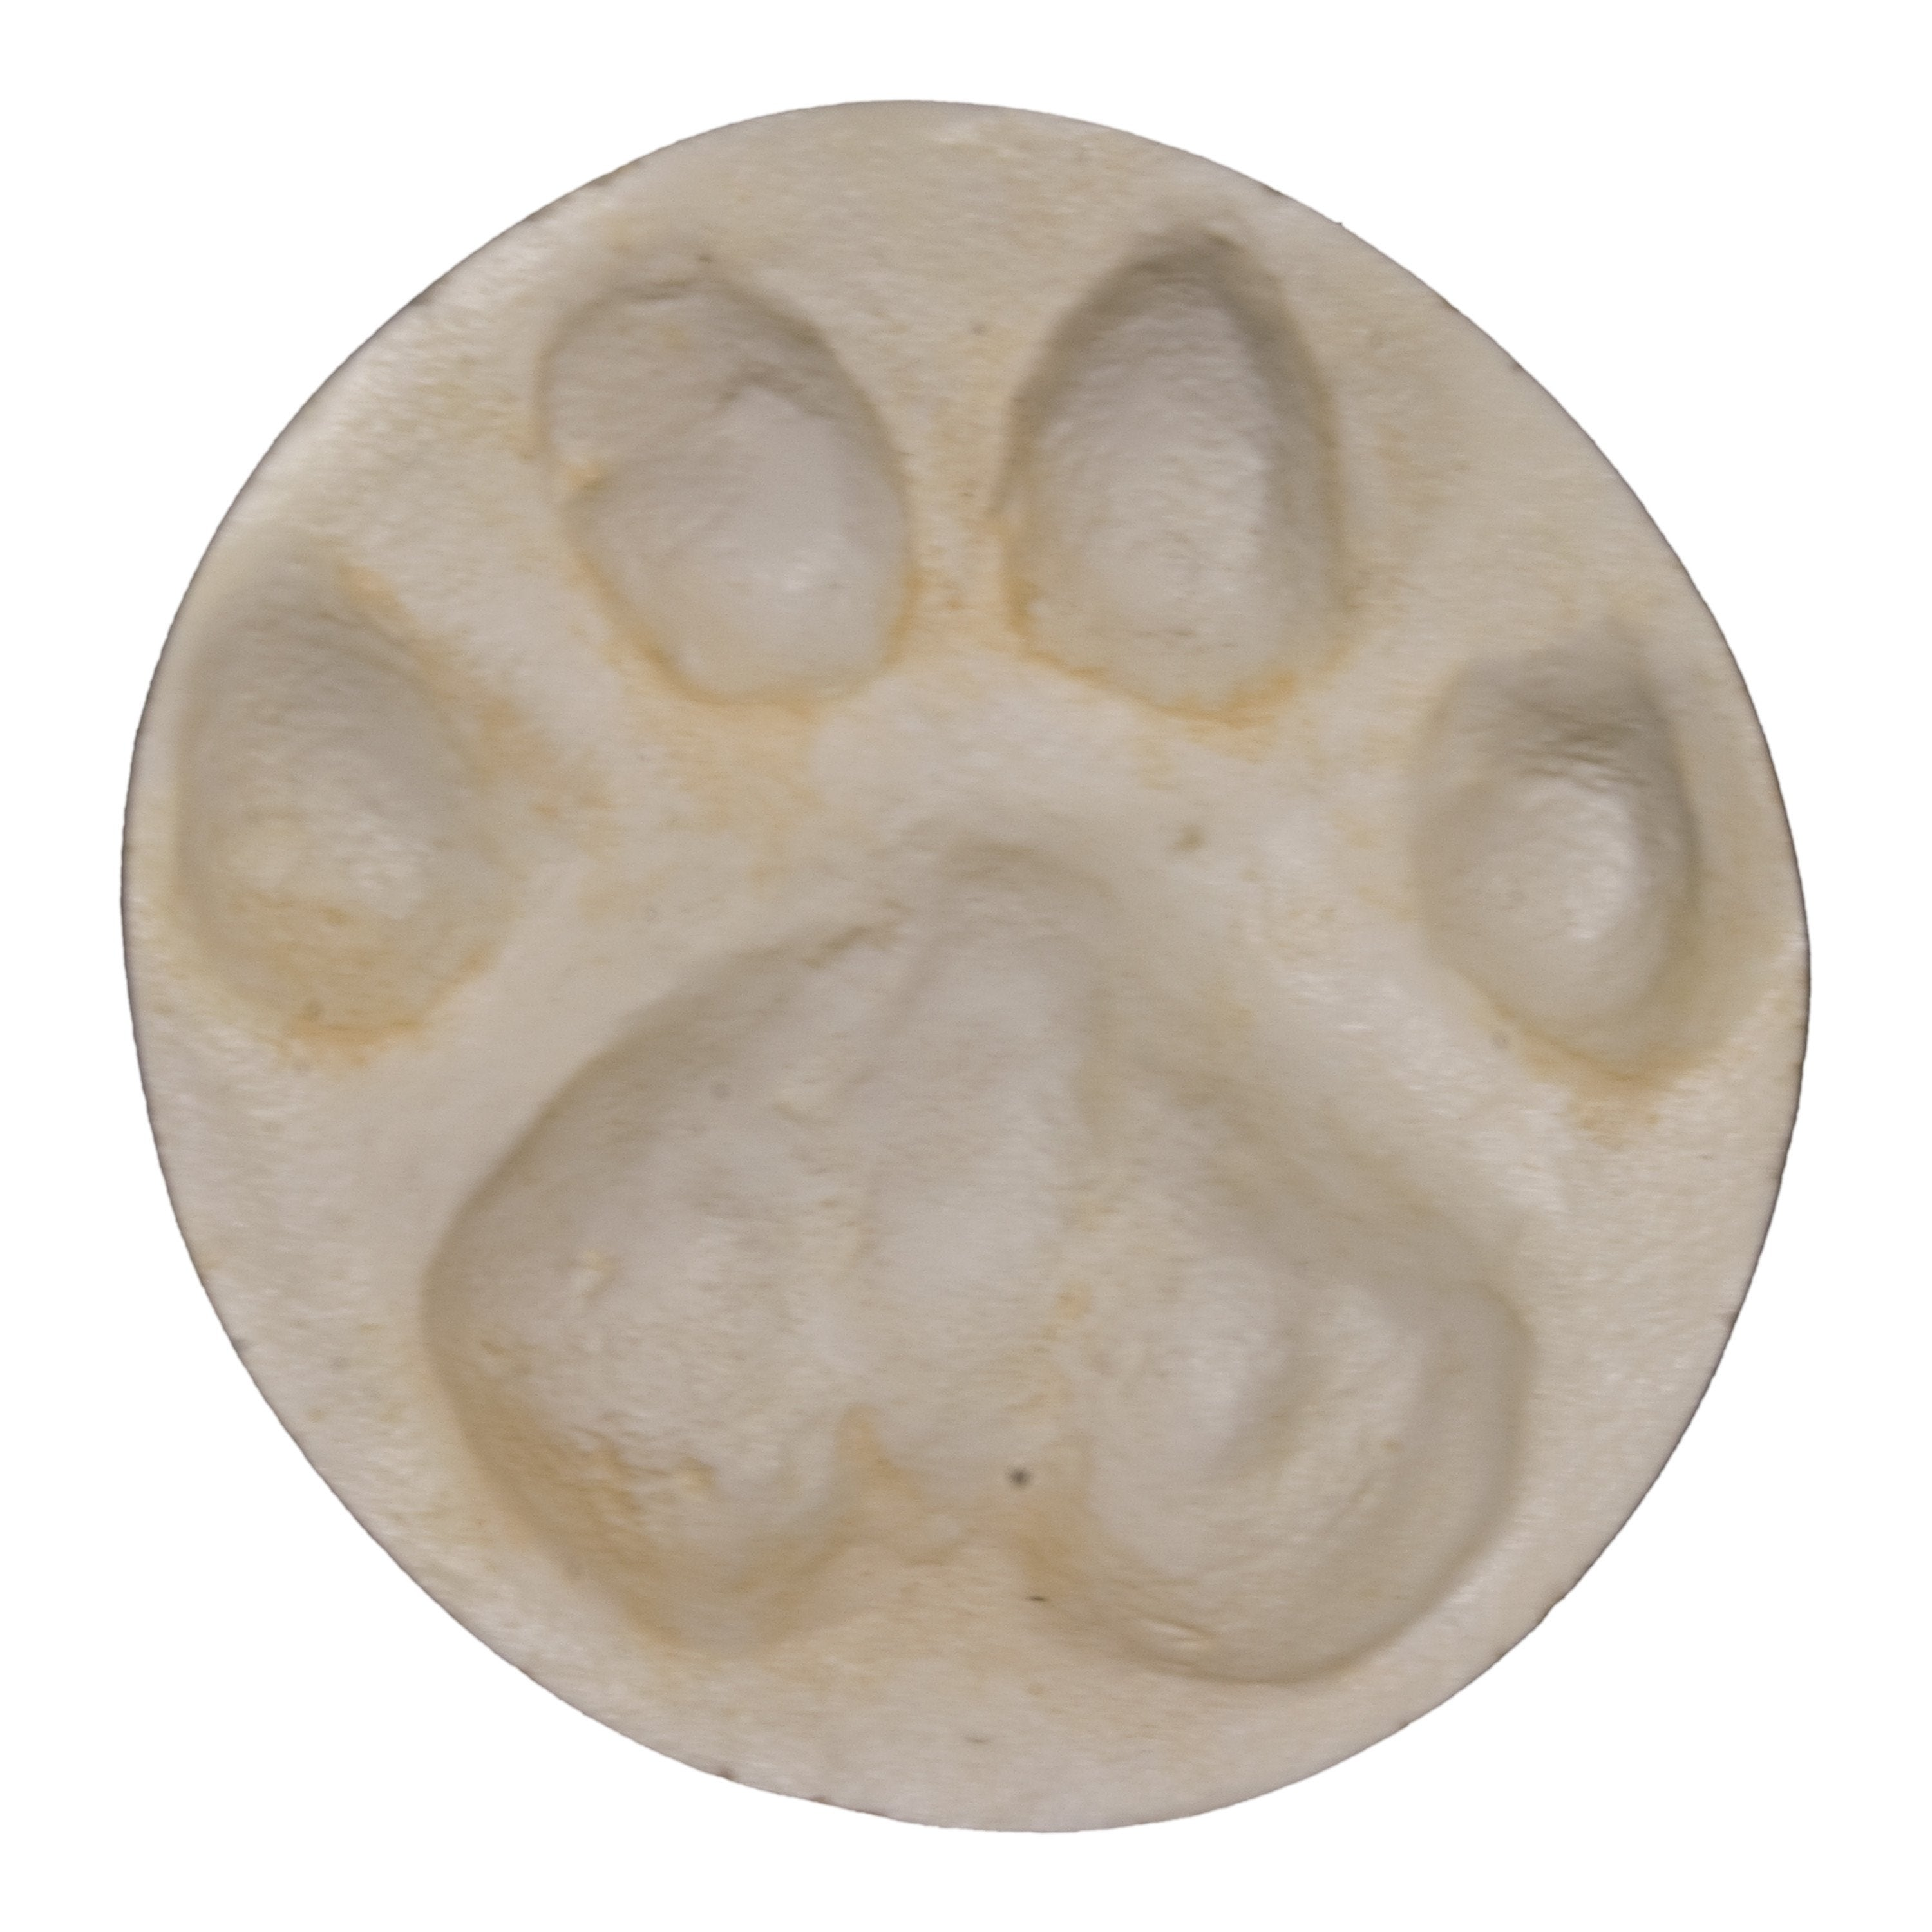 mountain lion negative footprint for sale skulls unlimited